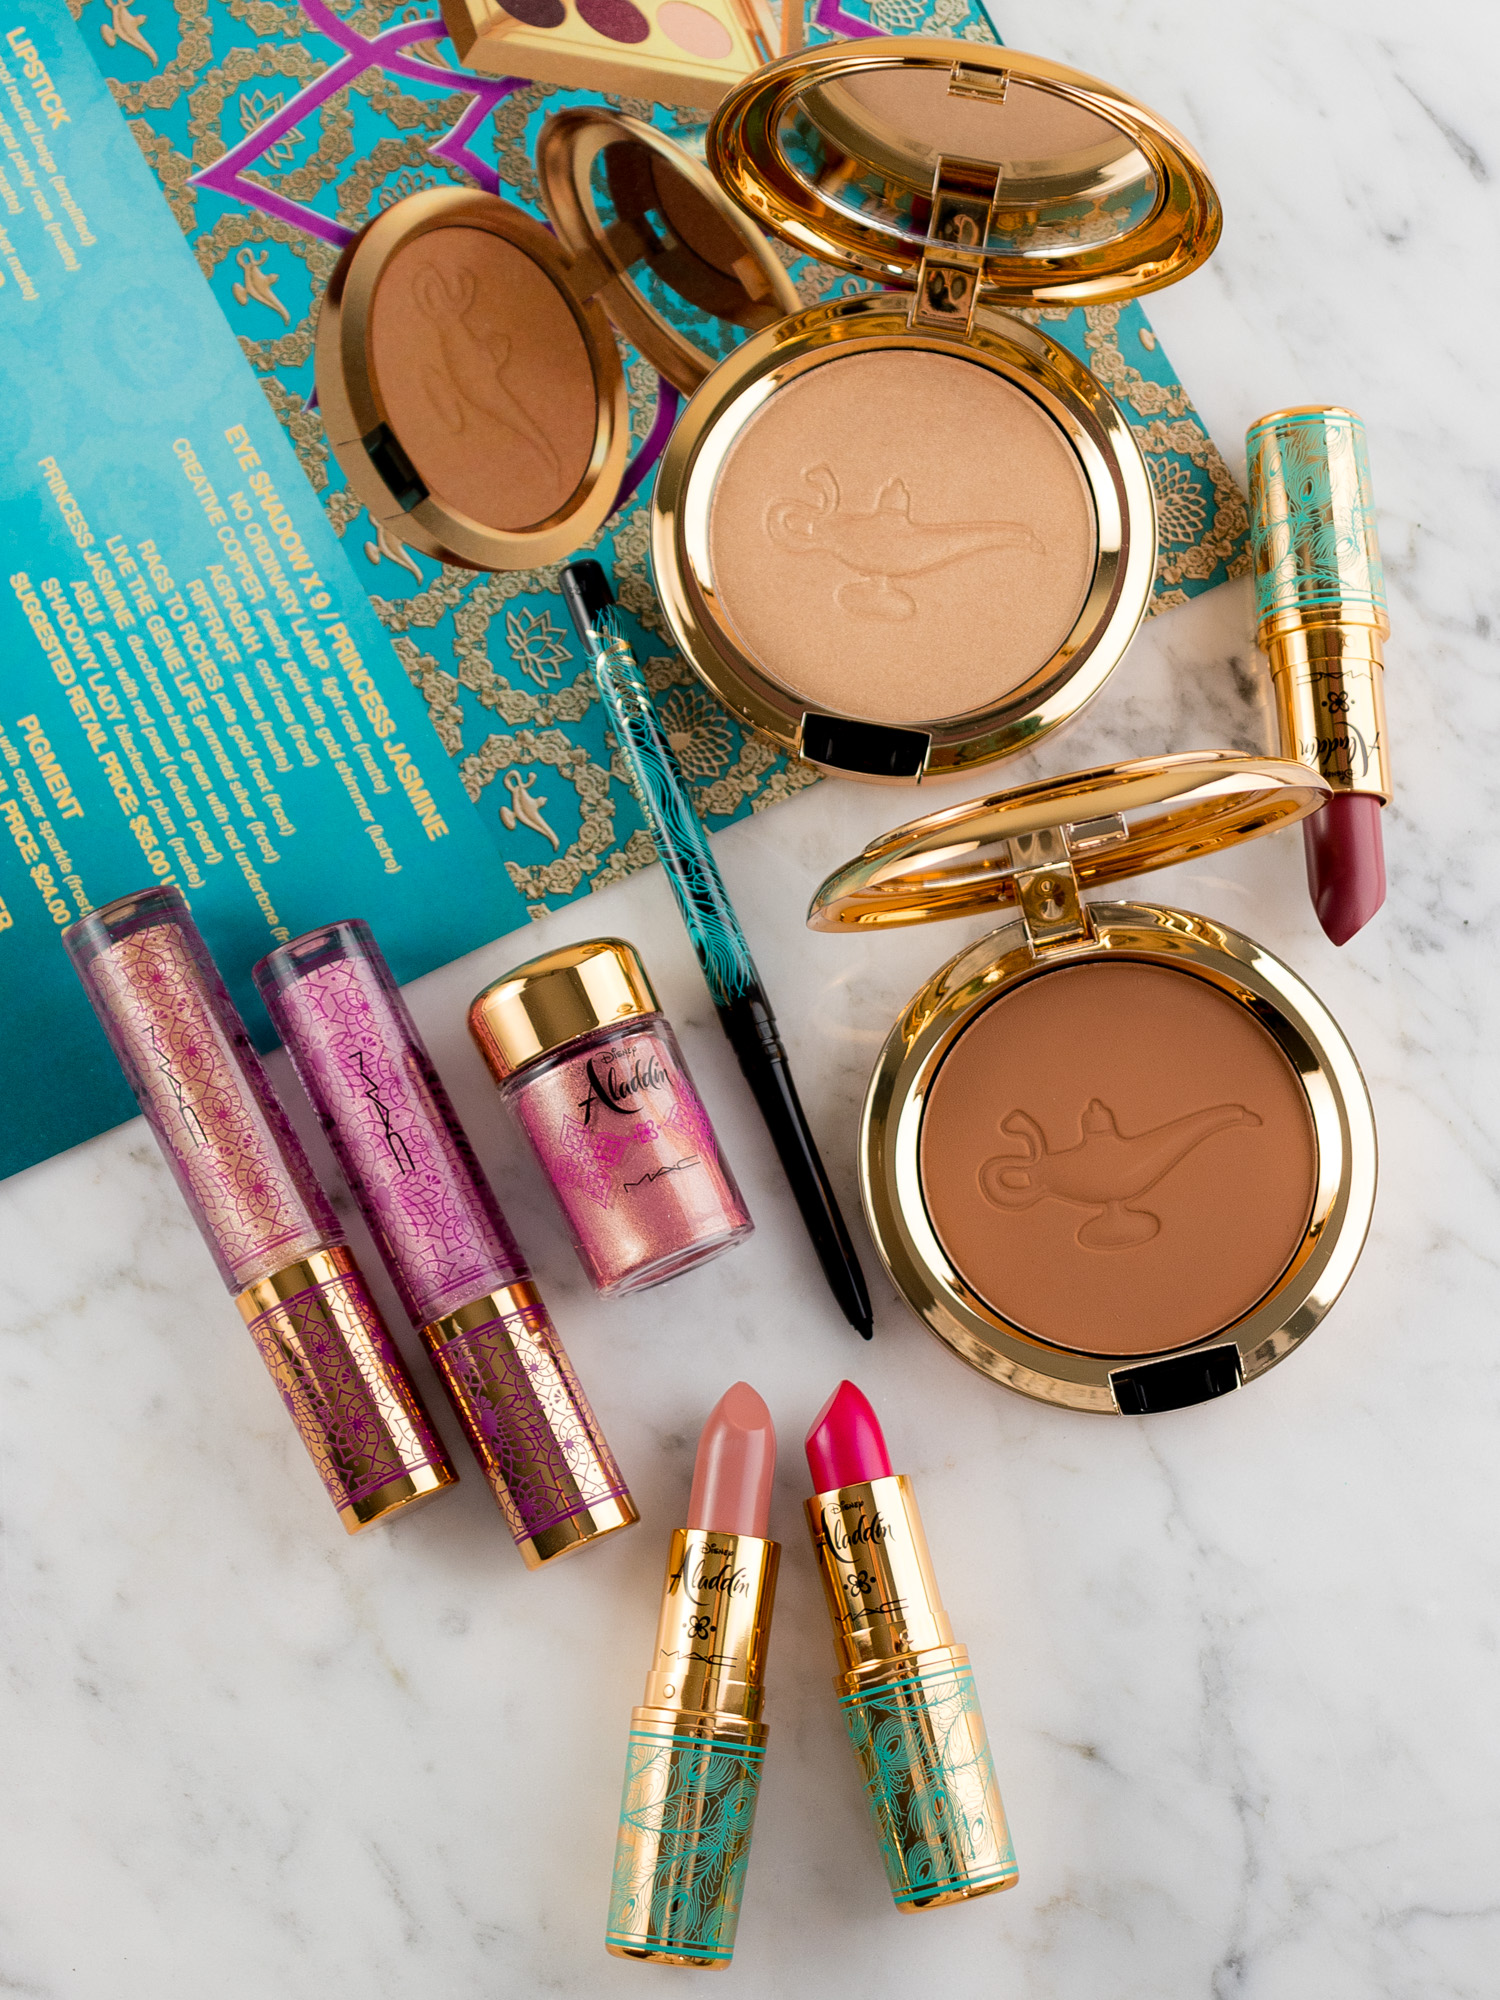 The+Disney+Aladdin+Collection+by+MAC+Cosmetics.jpeg